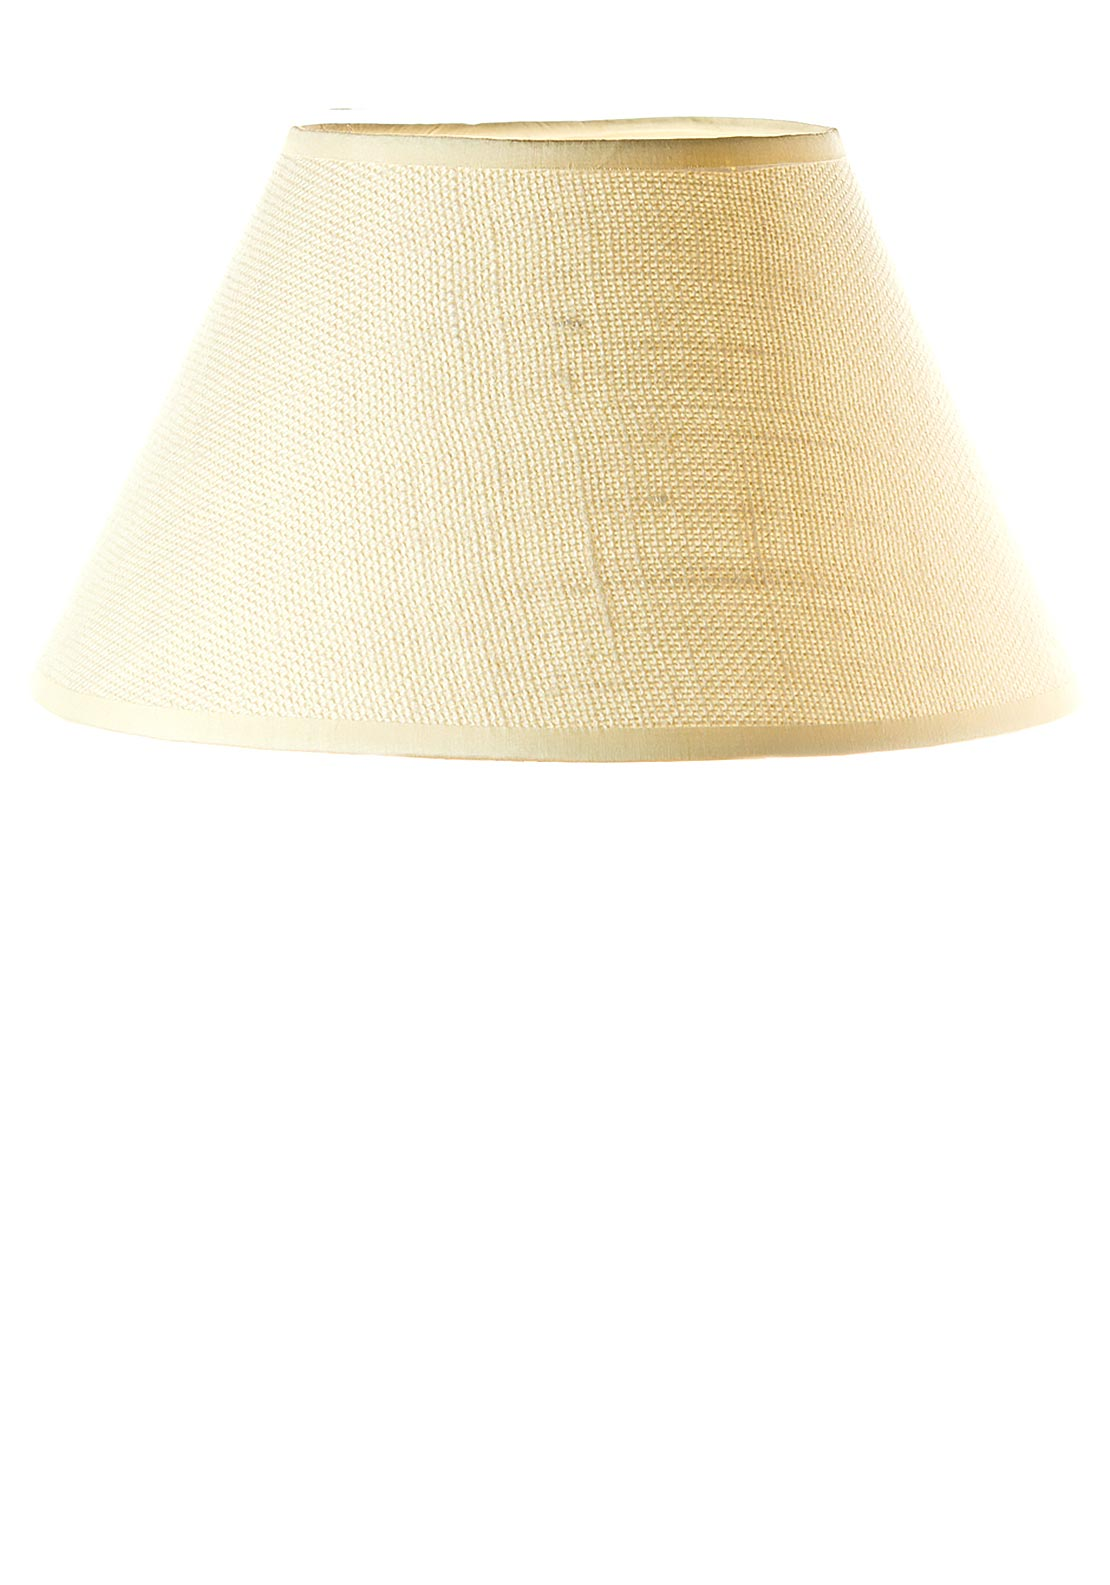 Nicholas Mosse Pottery 5 Inch Lamp Shade